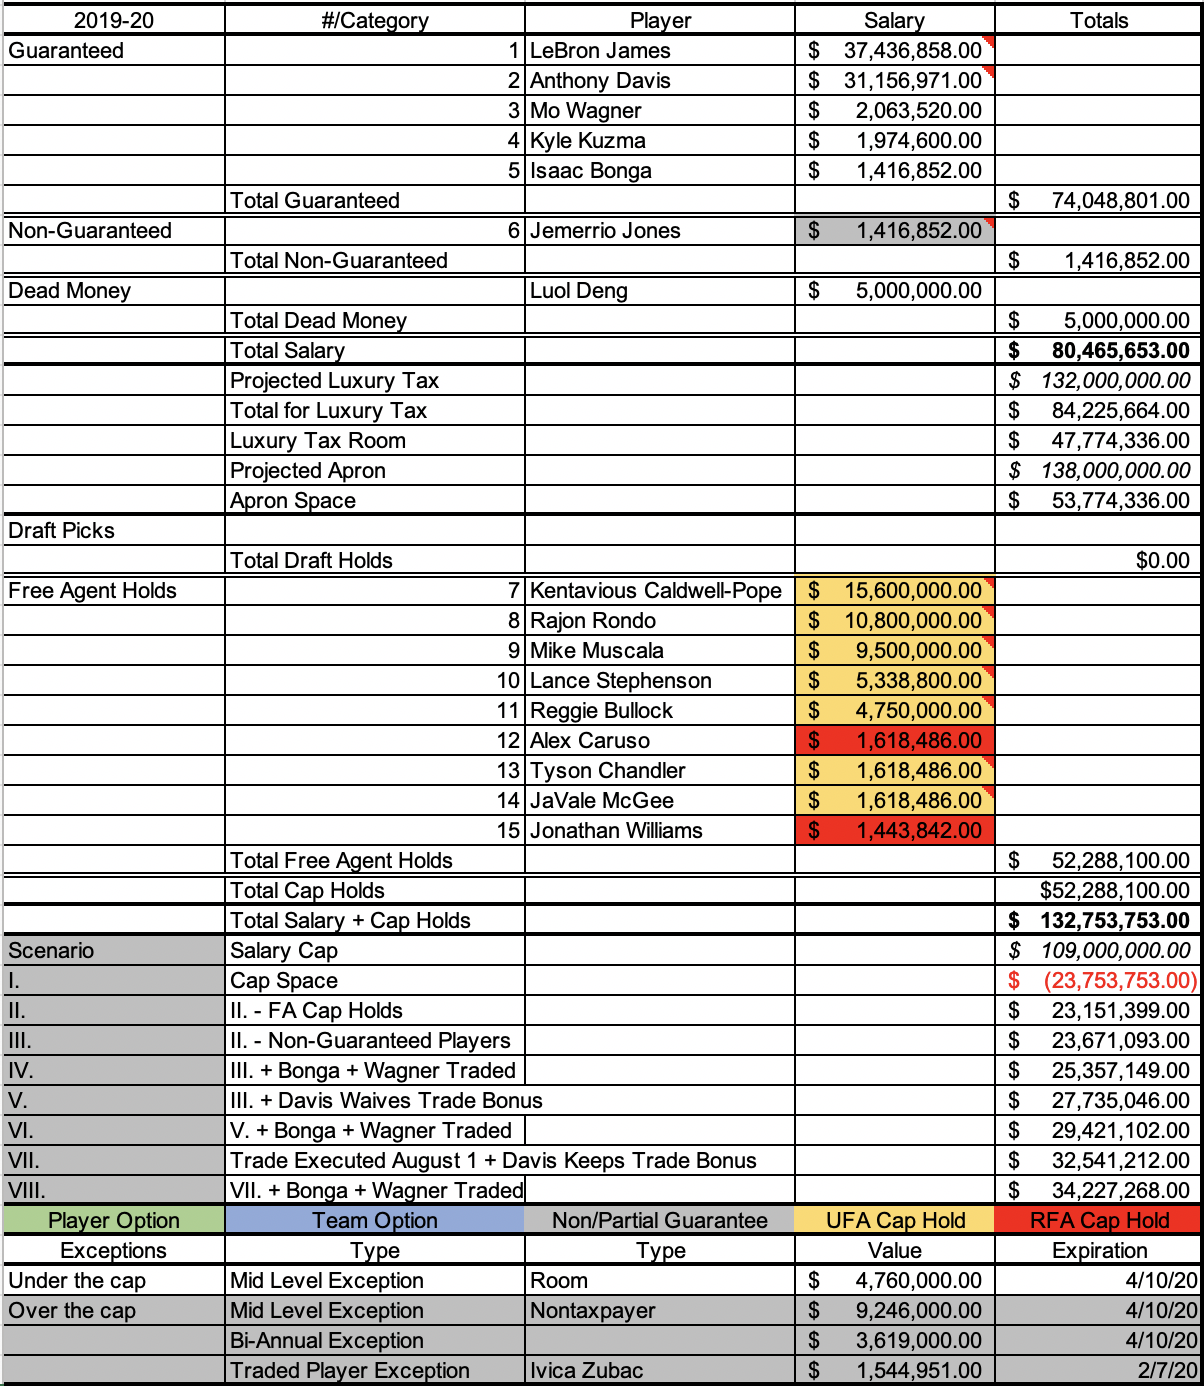 Lakers payroll and cap space scenarios.